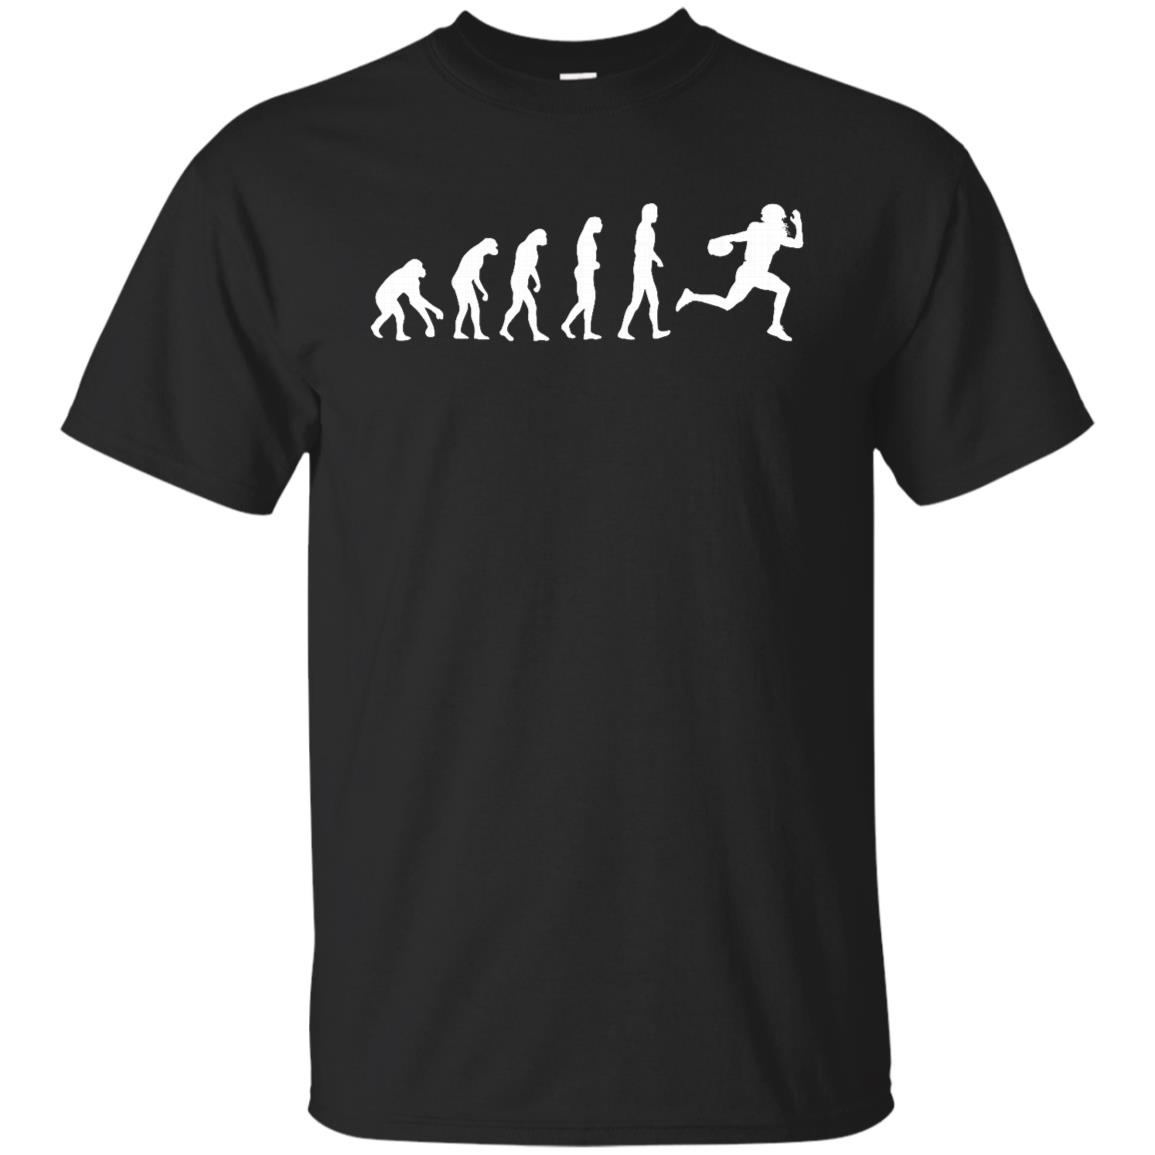 Football Evolution – Evolution of Football Unisex Short Sleeve